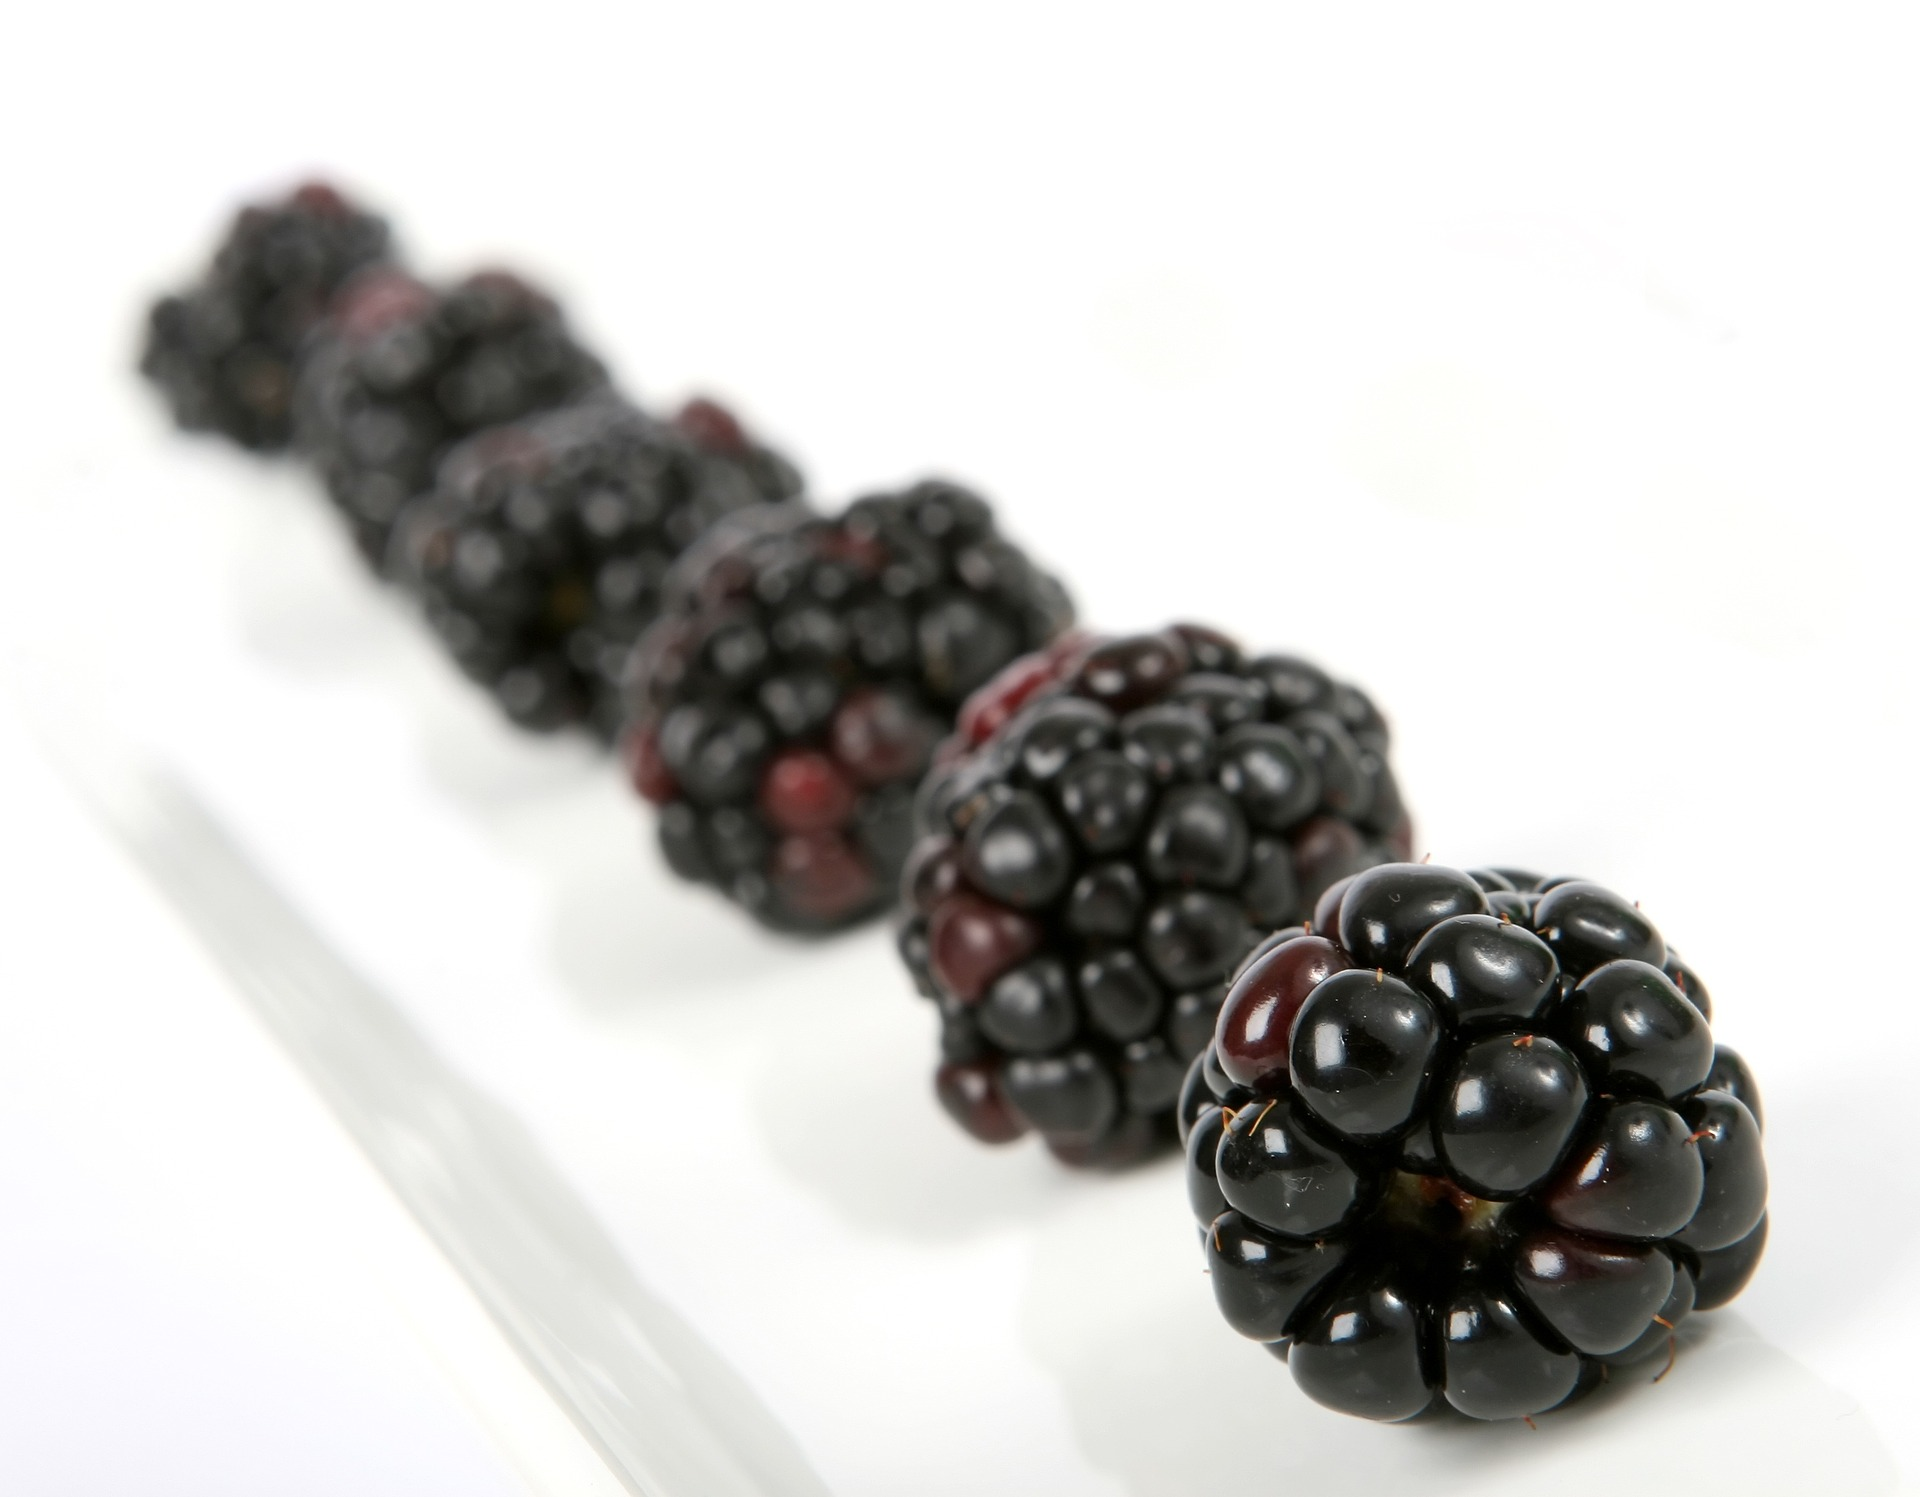 Black Raspberry Berries Have A Reserved Spot Of Their Own In Every Other List Foods Beneficial For Our Health Lucky Us They Eal To Taste